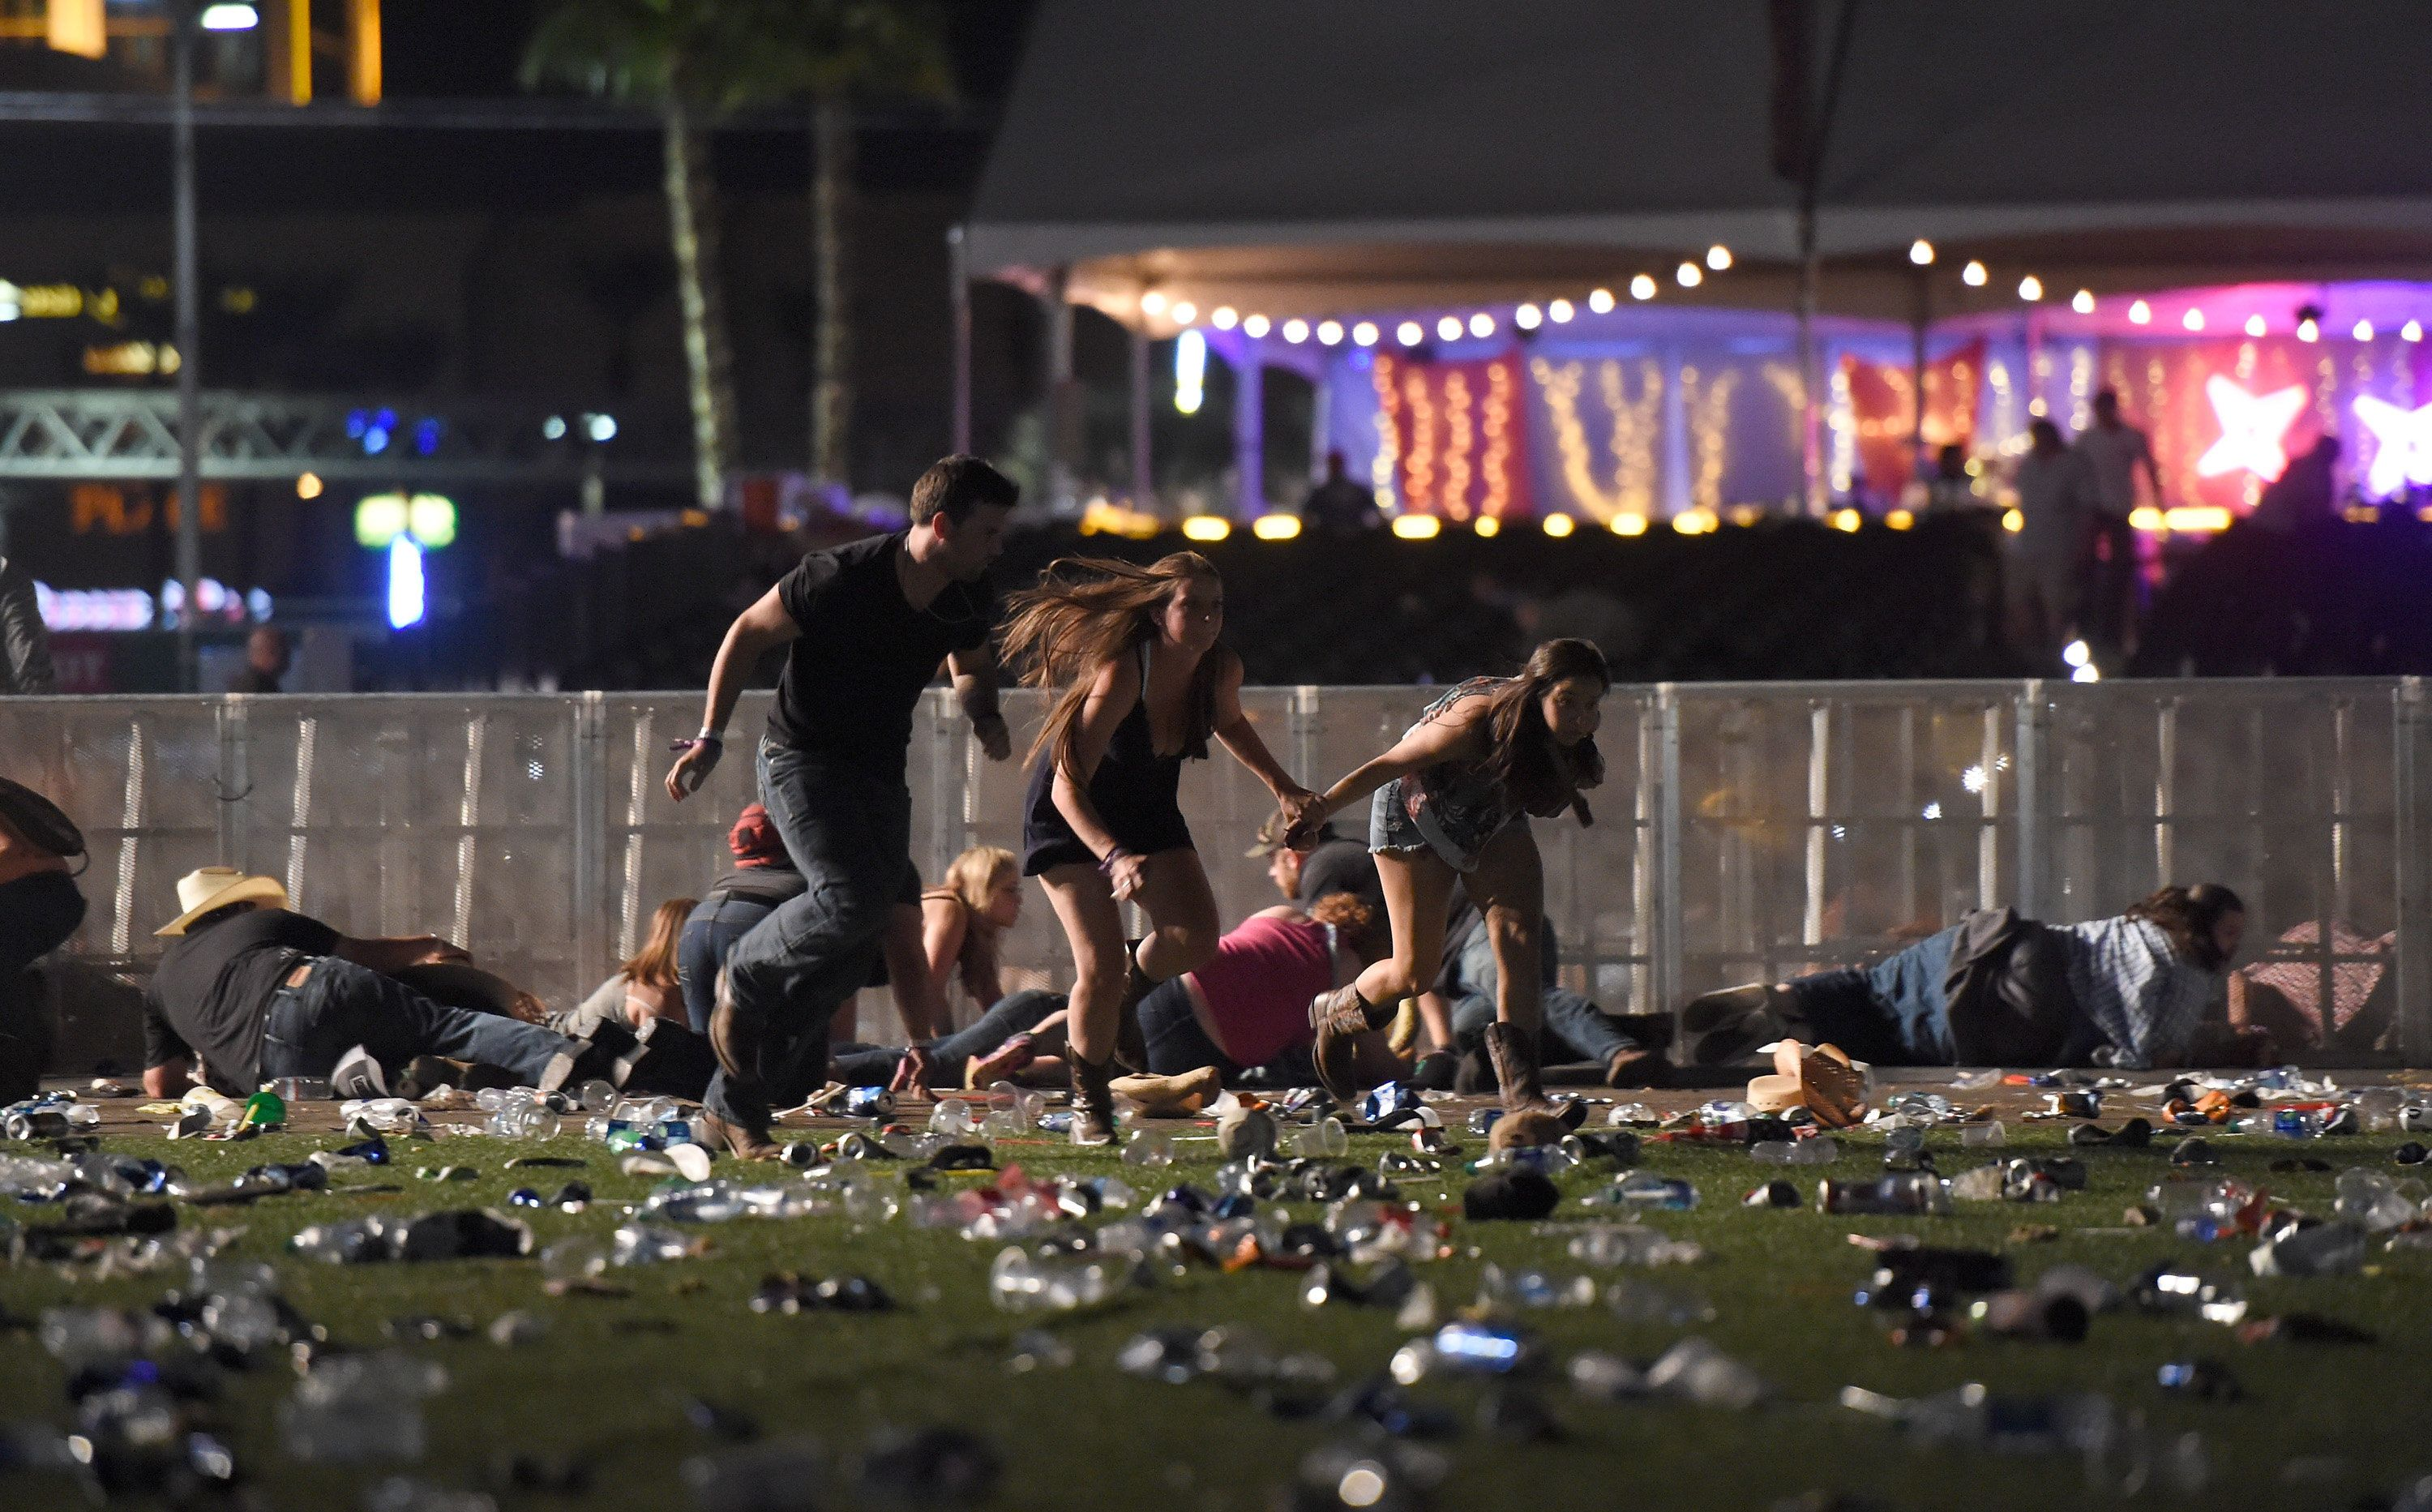 Las Vegas shooter's girlfriend was 'sent away' before his massacre